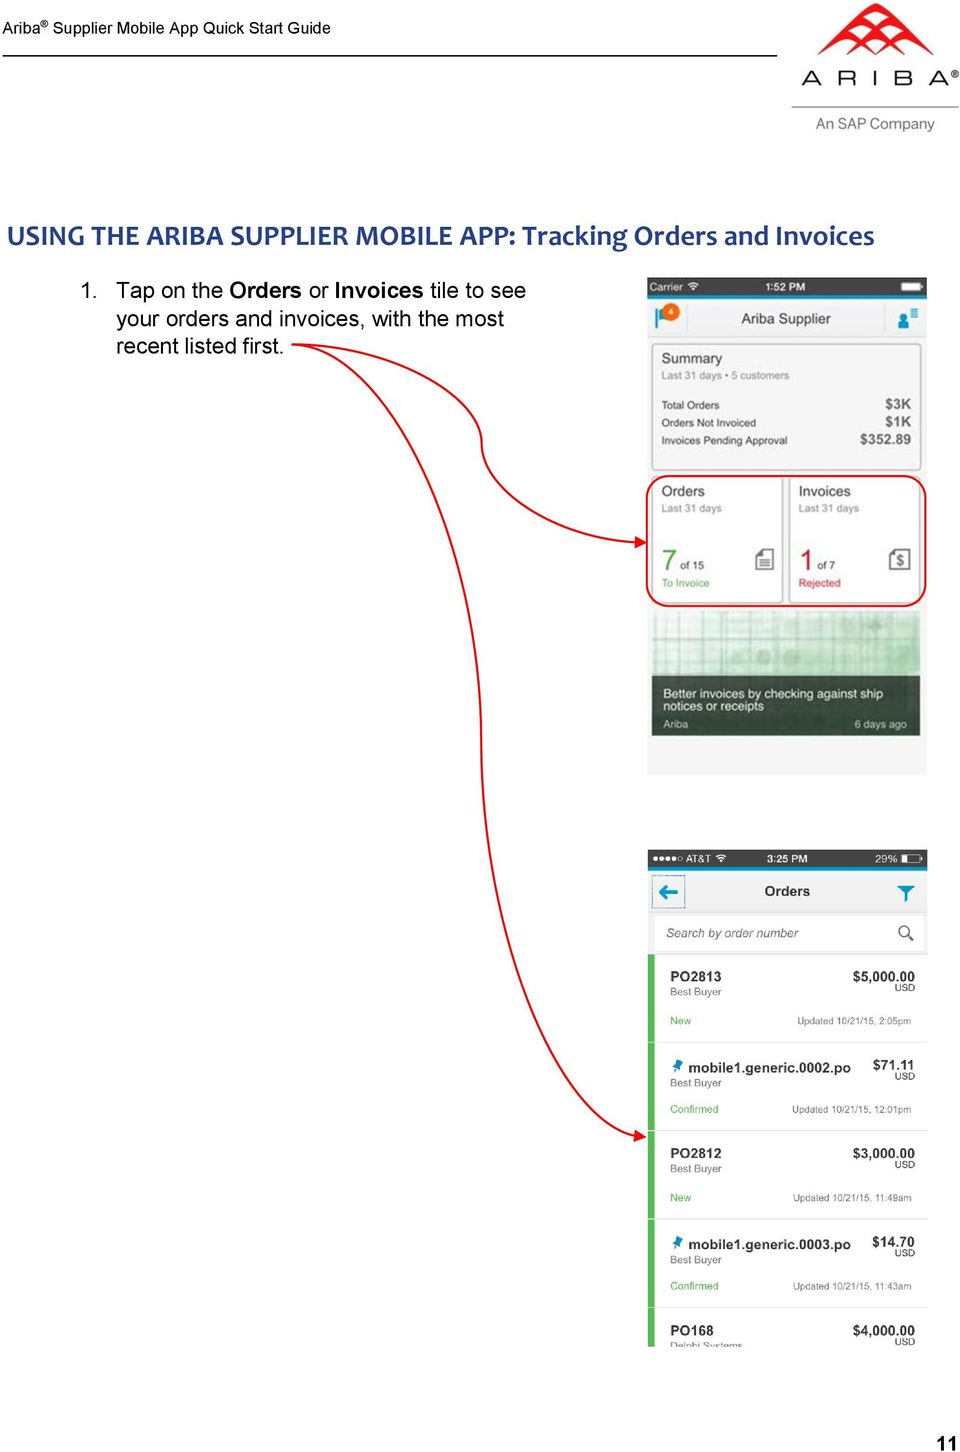 Tap on the Orders or Invoices tile to see